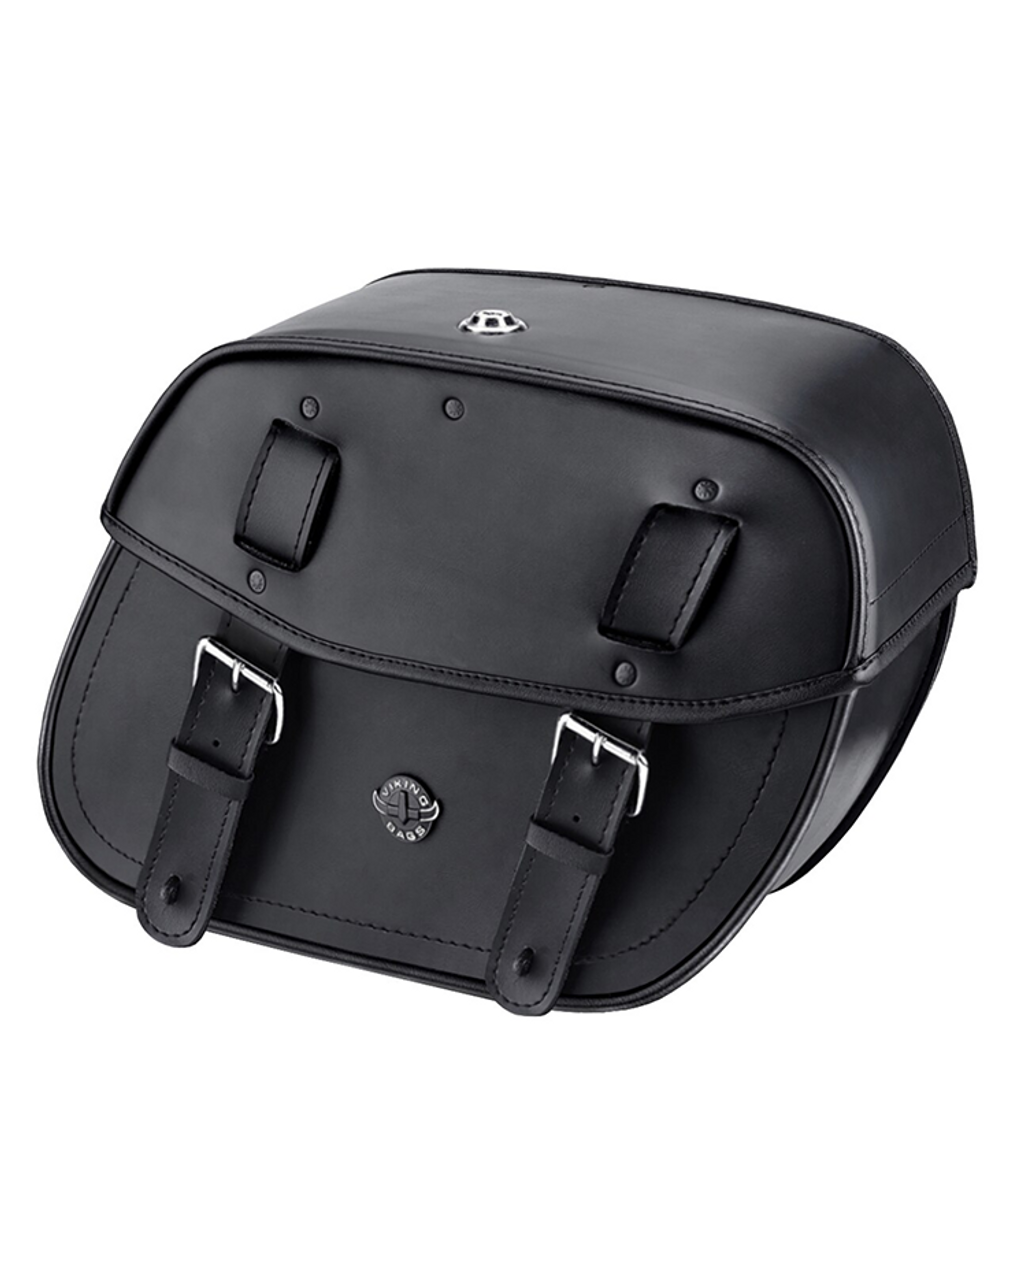 Viking Sportster Specific Shock Cutout Large Motorcycle Saddlebags For Harley Sportster Seventy Two 72 Bag view